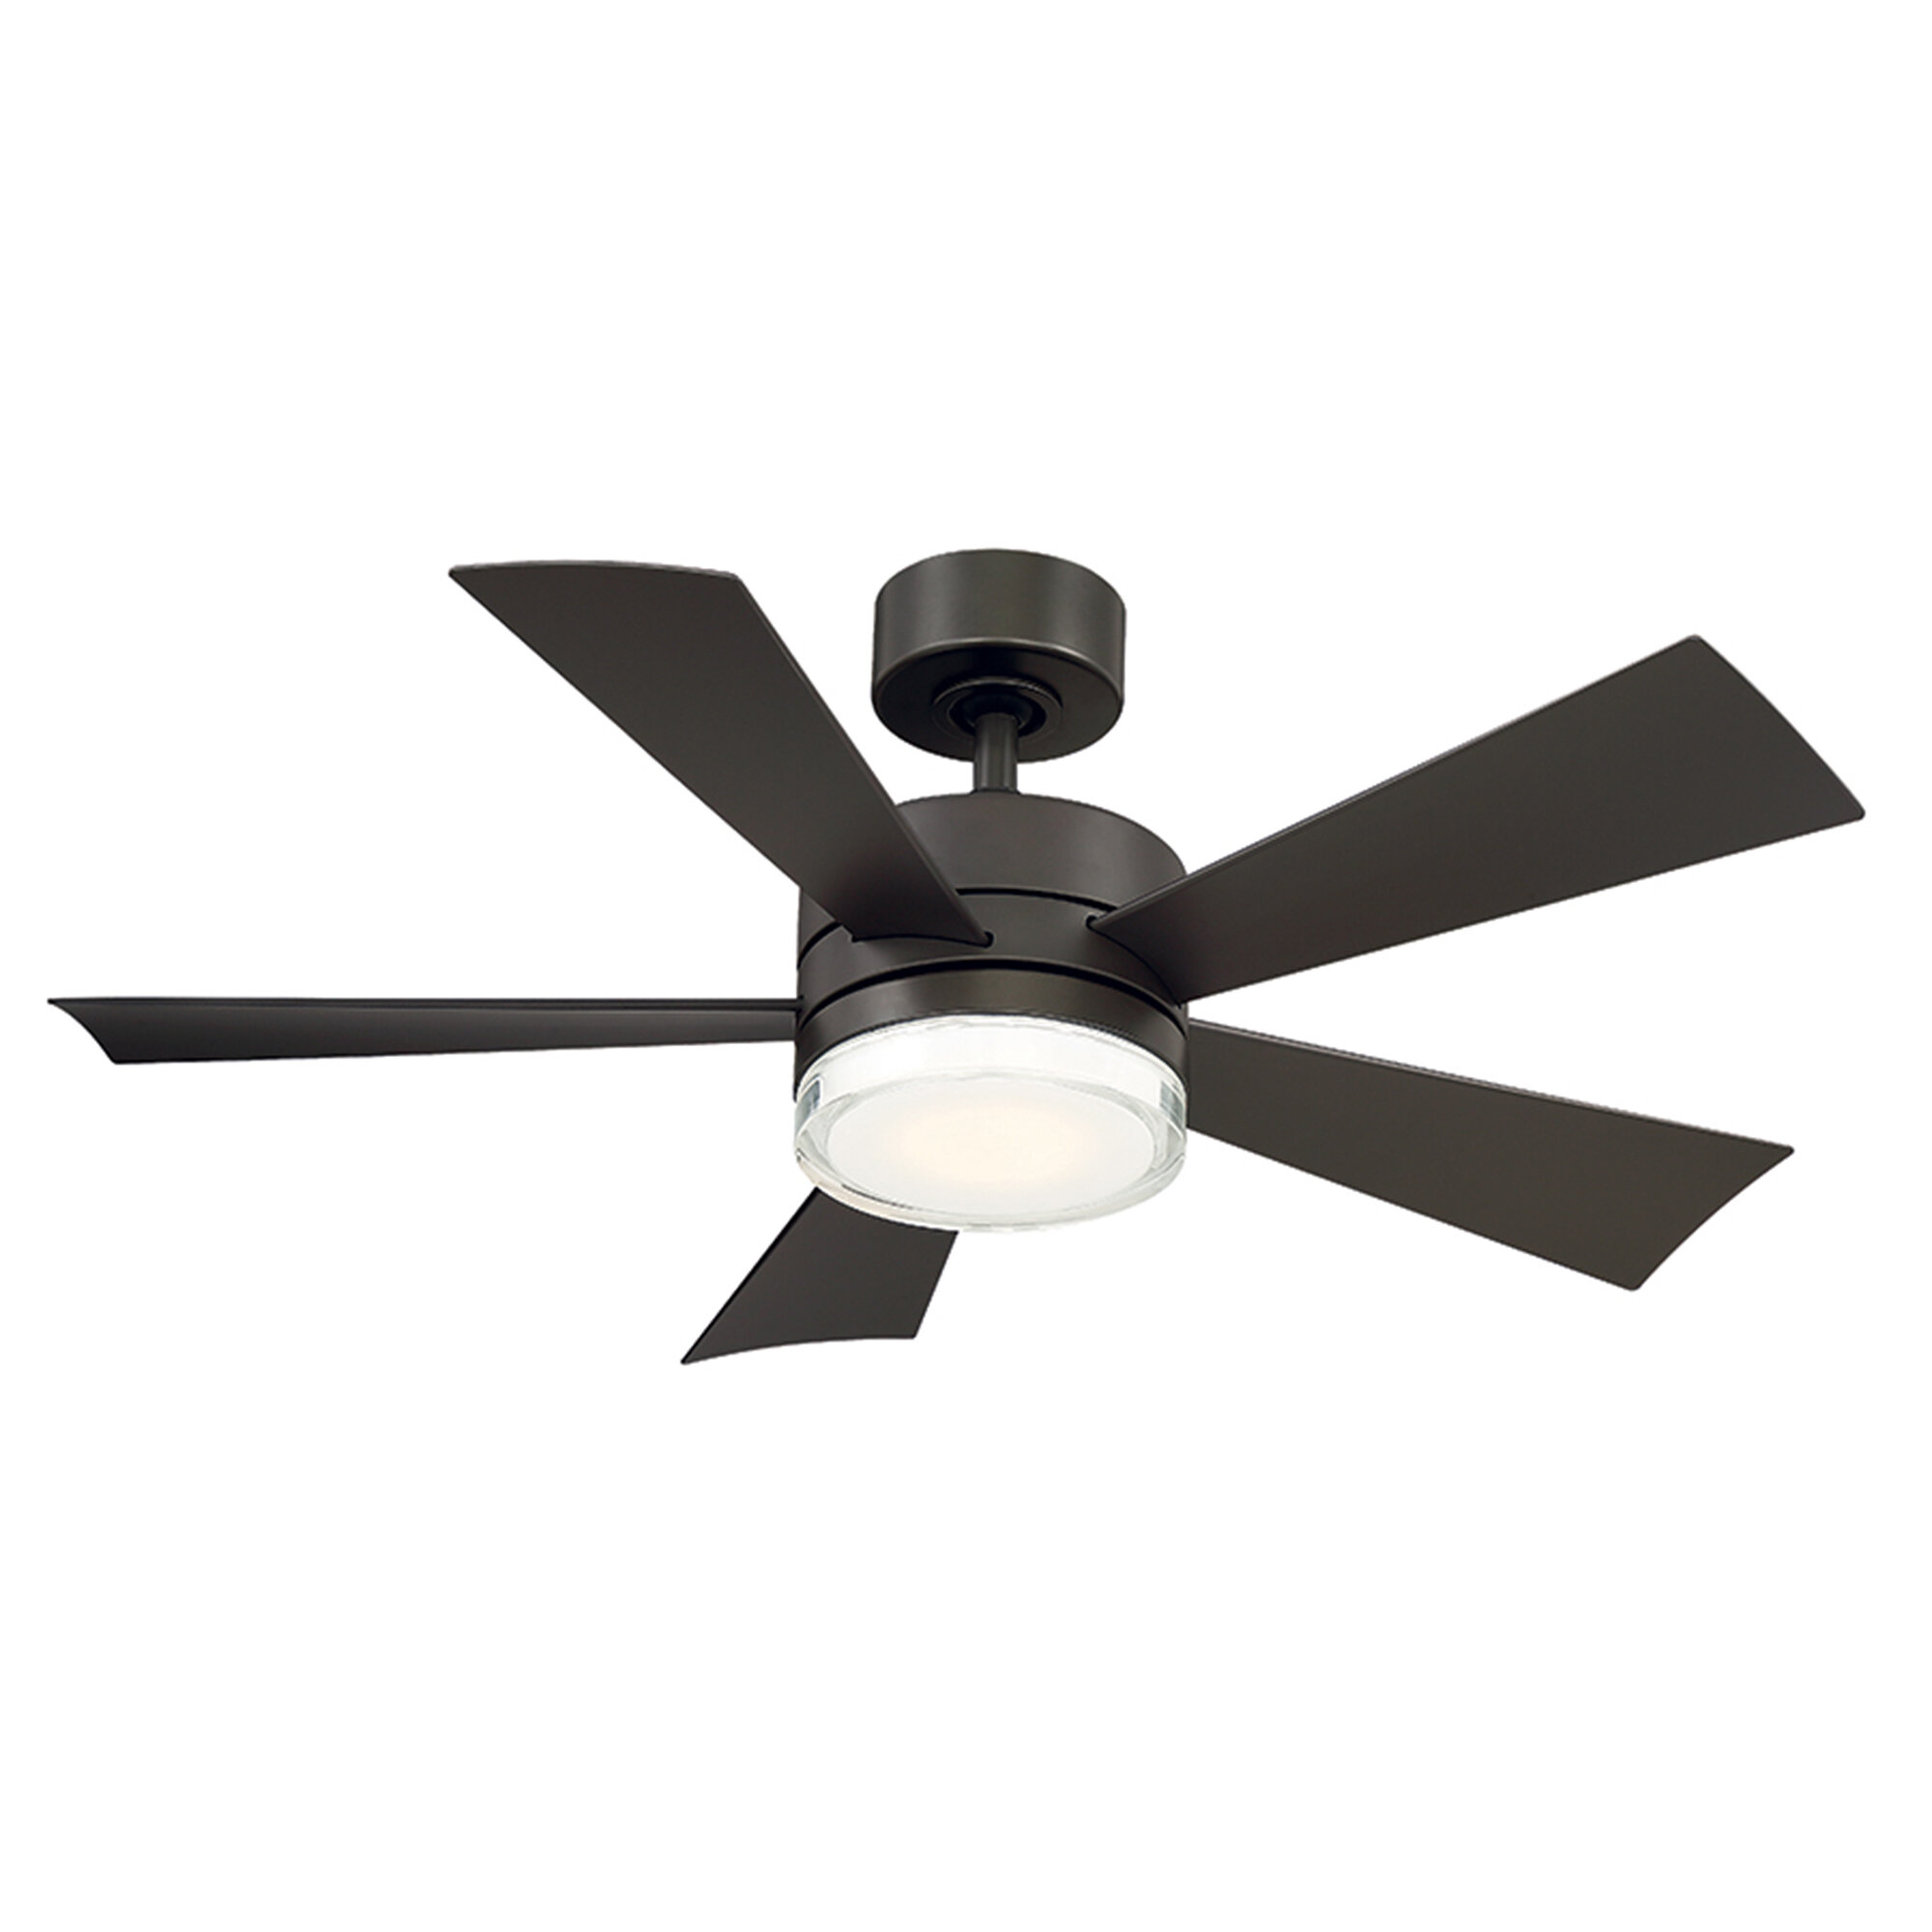 Modern Forms Wynd 5 Blade Outdoor Led Smart Standard Ceiling Fan With Remote Control And Light Kit Included Reviews Wayfair